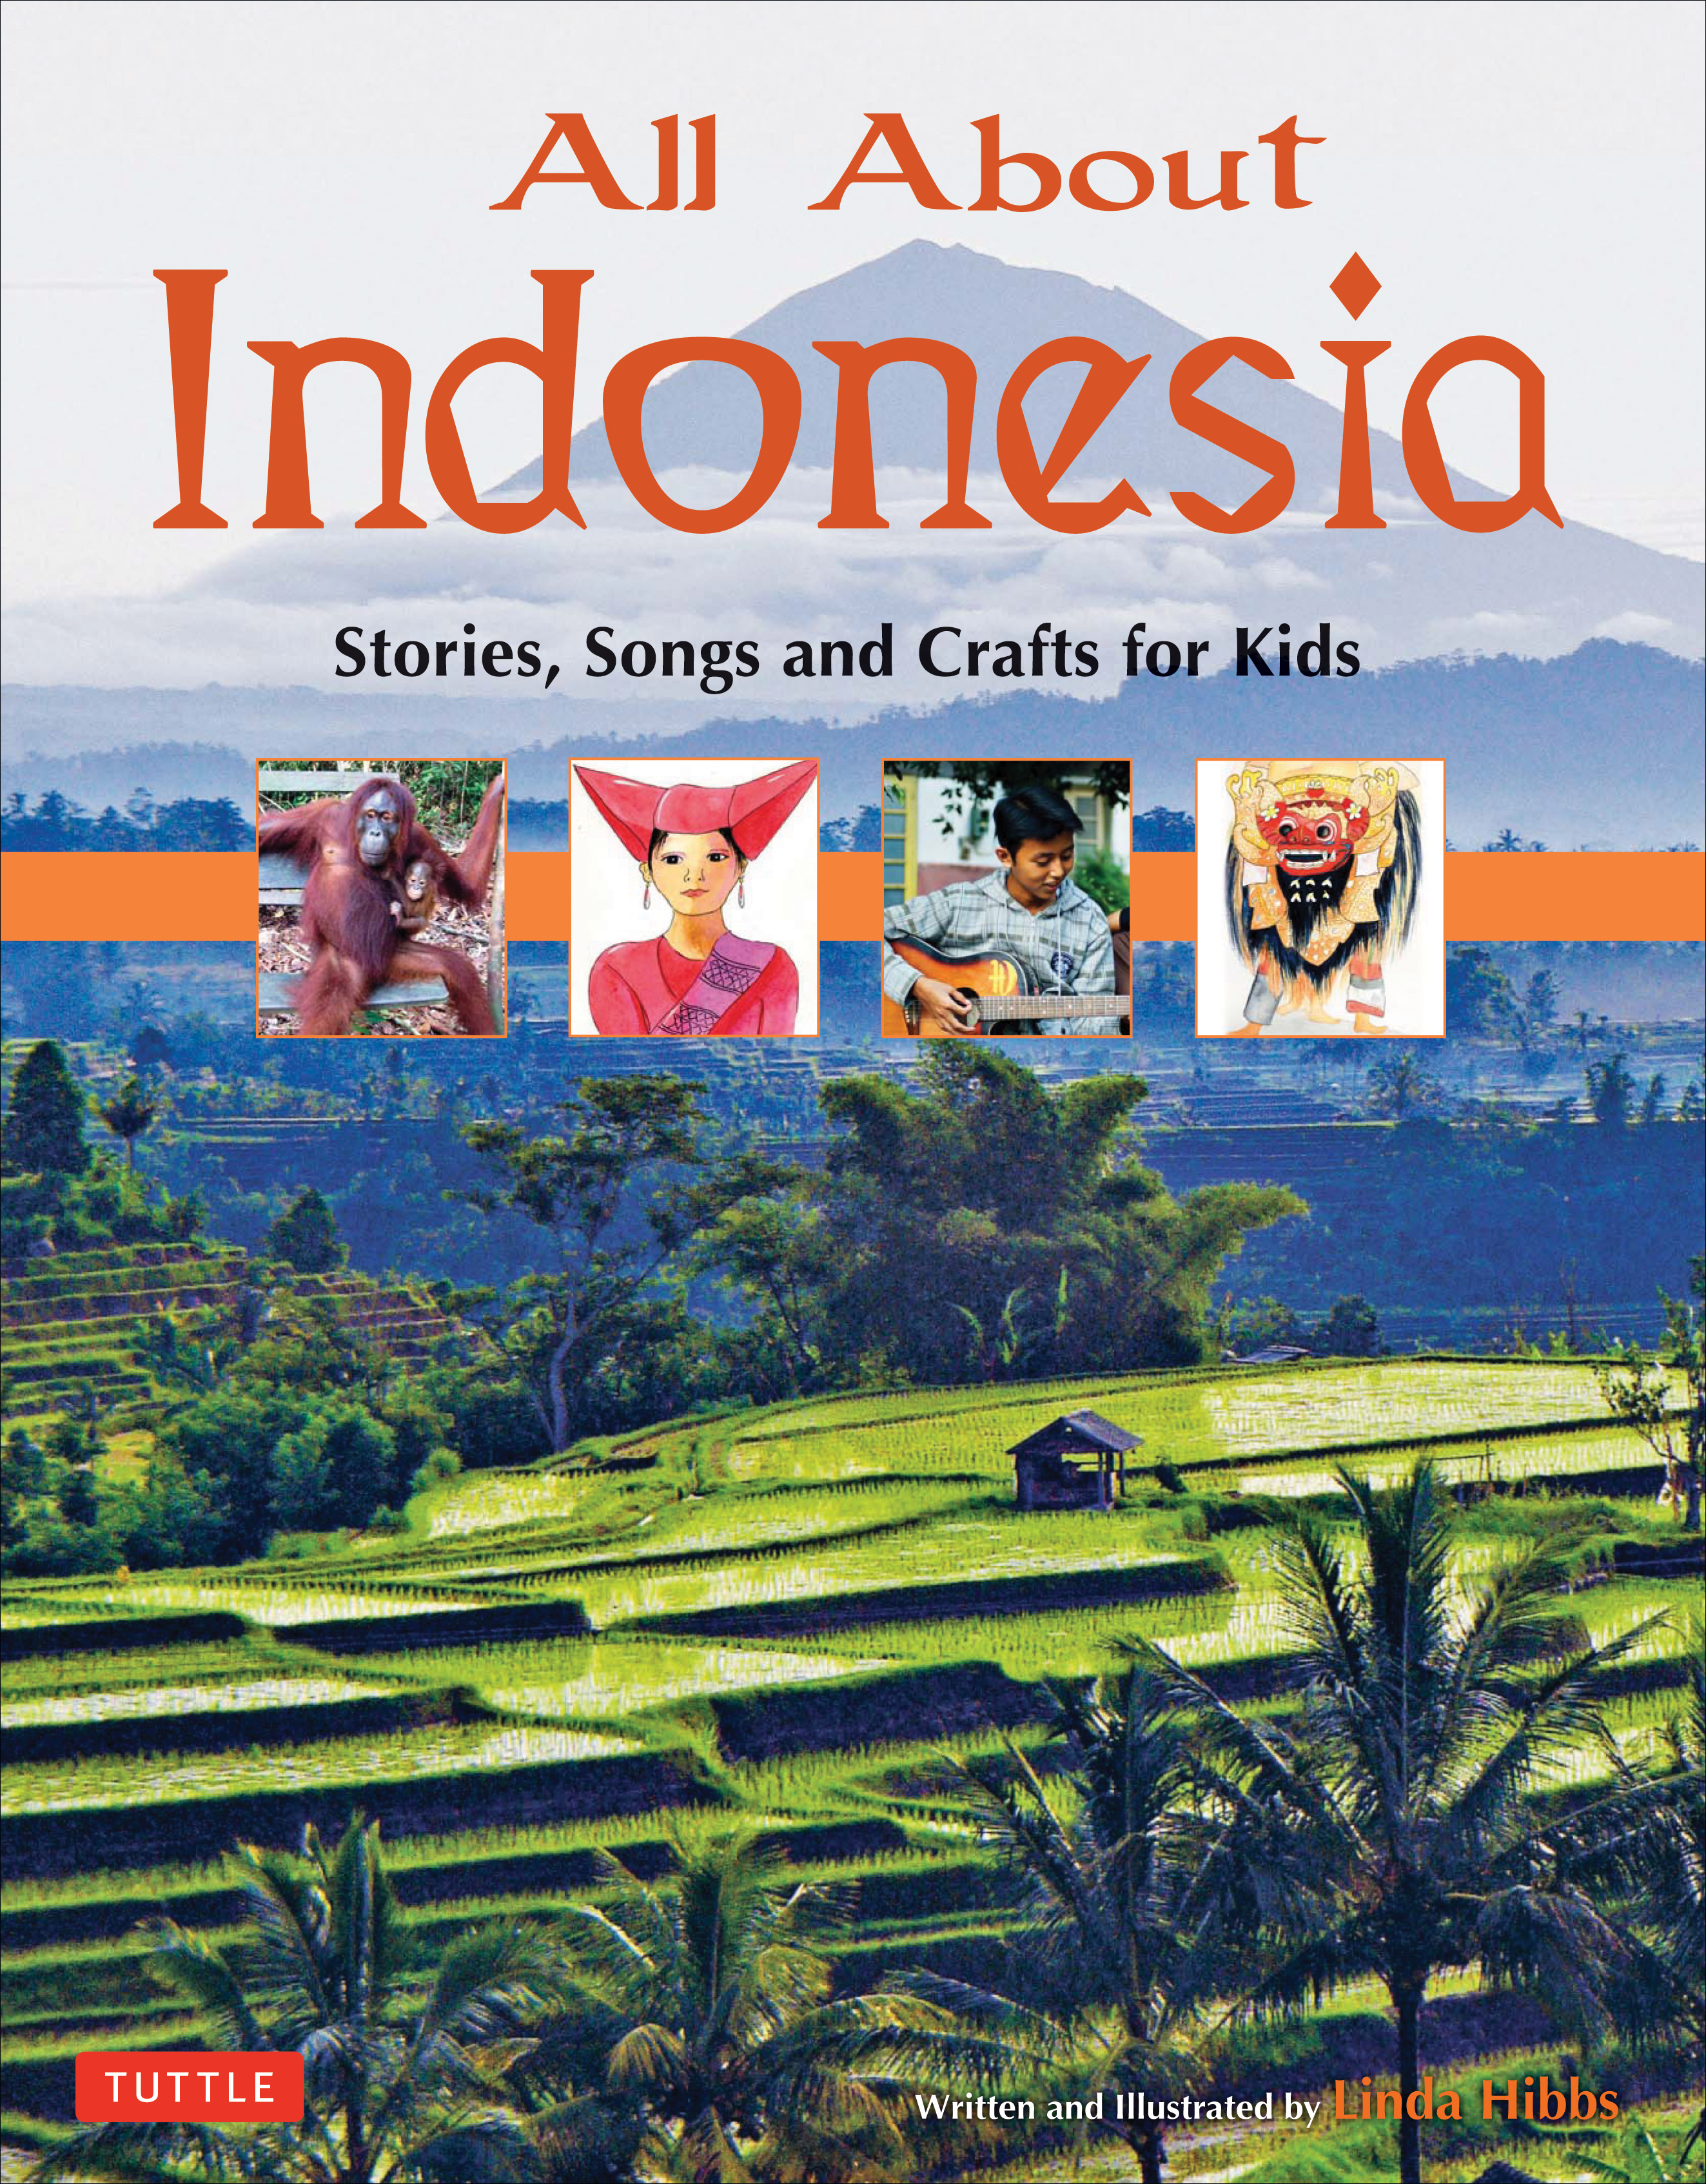 All-about-indonesia-9780804840859_hr